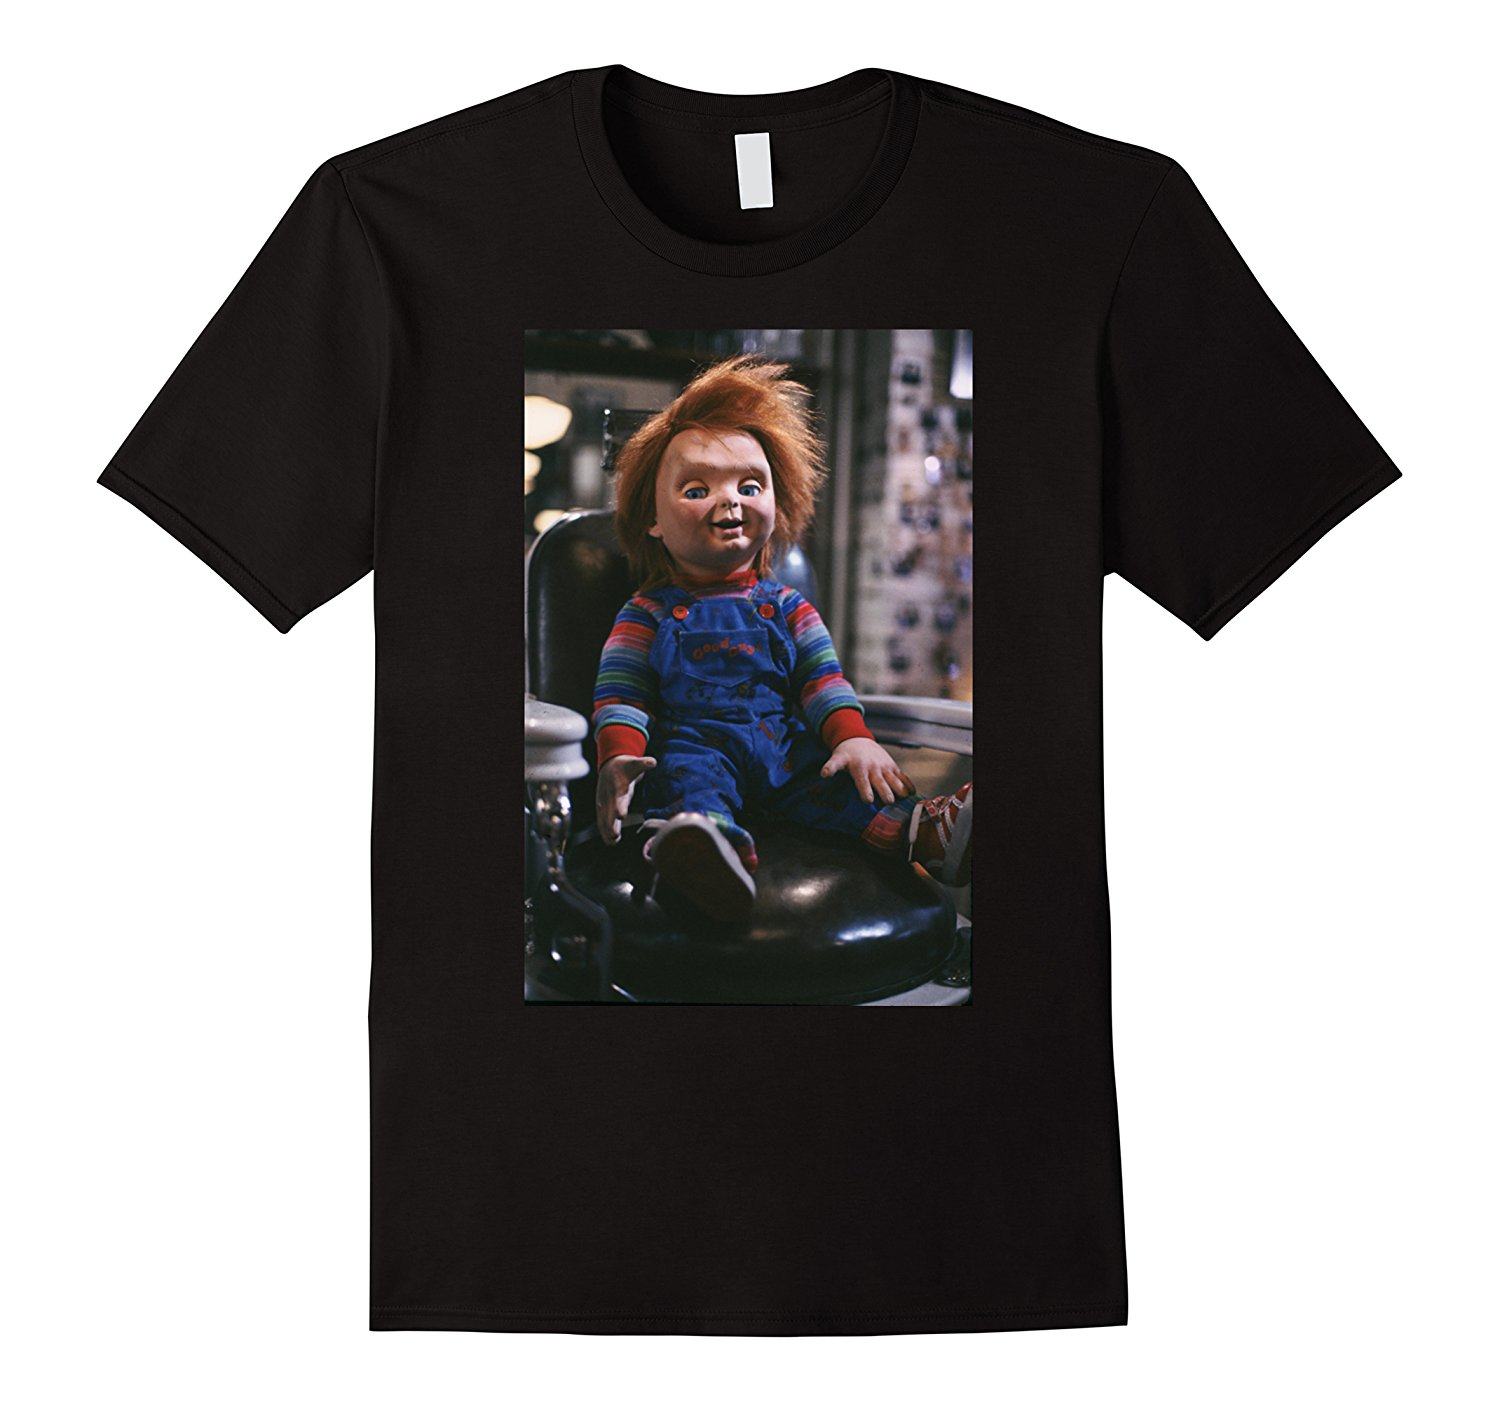 Chucky Sitting In Barber Chair T-shirt 100% Cotton Short Sleeve O-Neck Top Tee T Shirt Summer Famous Clothing Plus Size ...